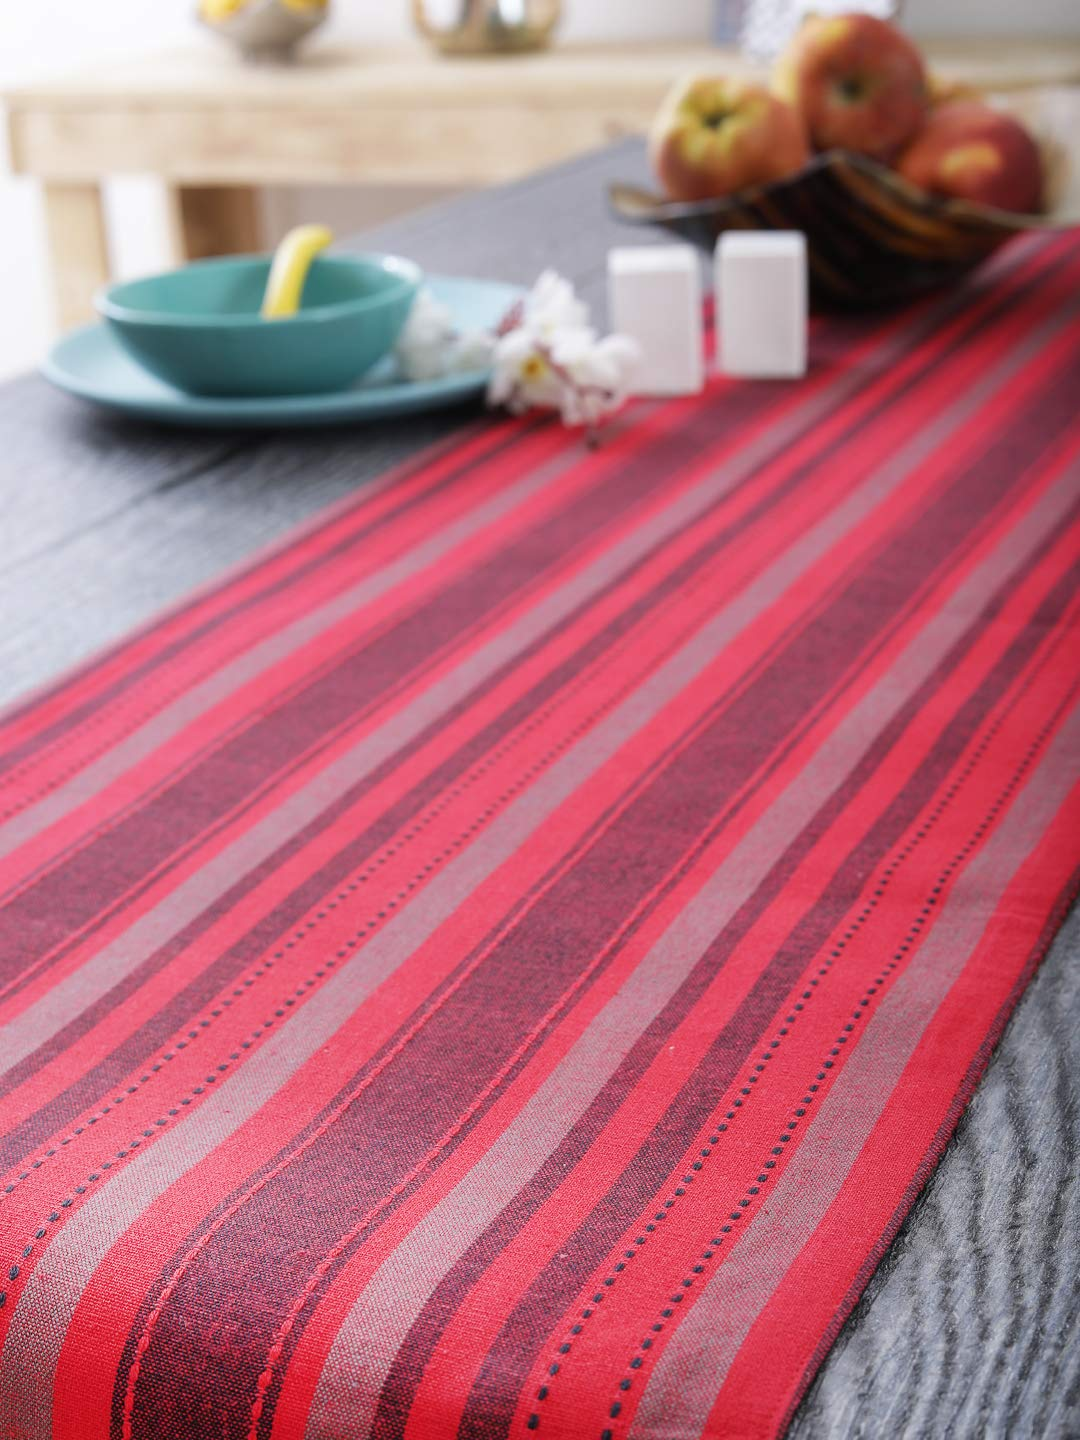 Thanks Giving Dinner Parties Table Runners Perfect for Christmas Textured Stripe BBQs and Everyday Use 14 X 72 Soft Line 14 X 72 100/% Cotton